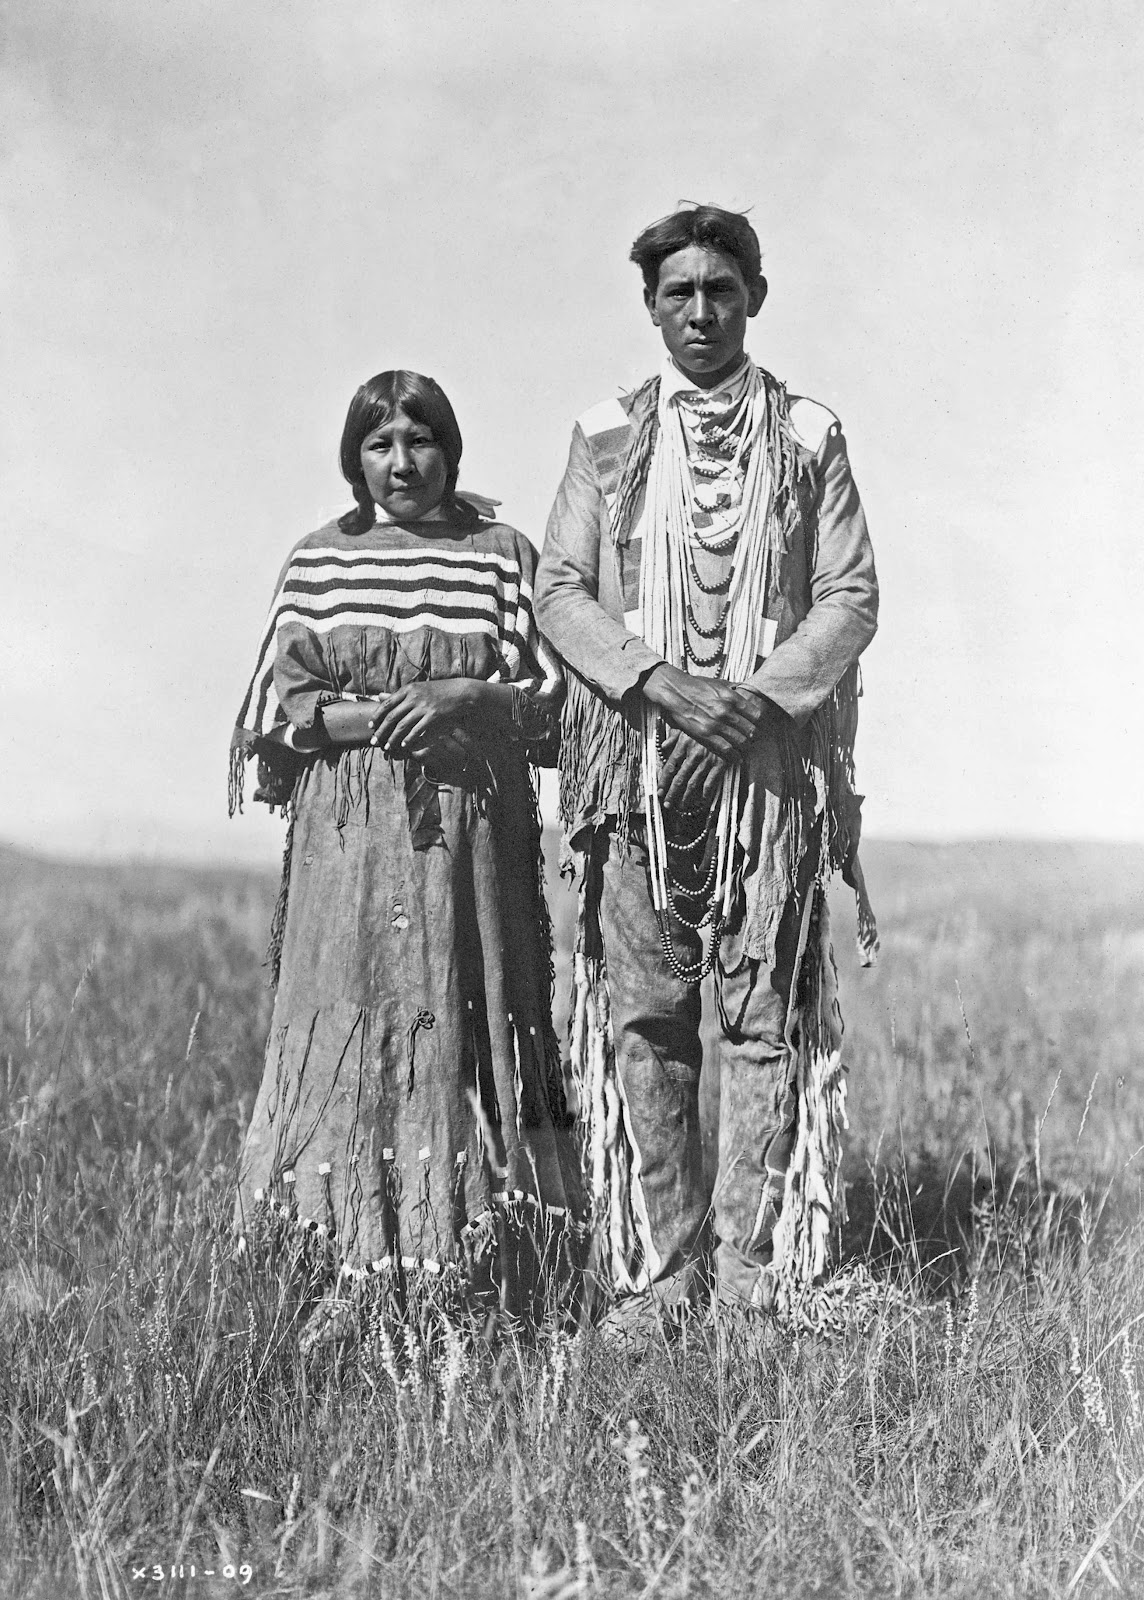 indians in the plains The history of the great plains indians can be traced back at least 13,000 years and possibly even millenia during the last stages of the ice age, small bands of people migrated in search of megafauna, or game, such as mastodons and mammoths.